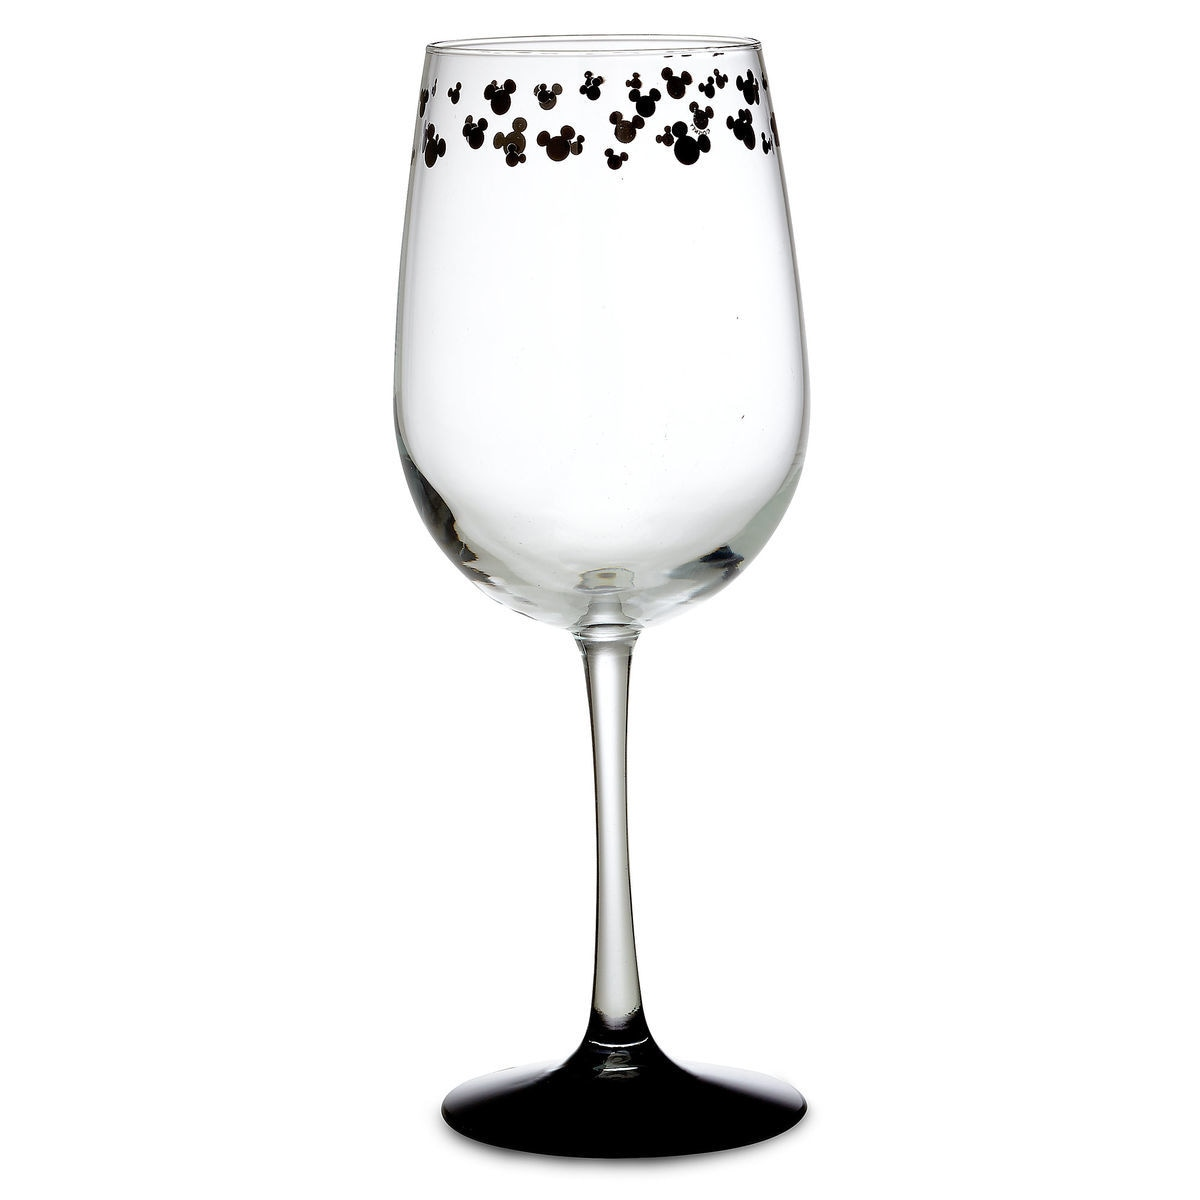 db856041e9 Product Image of Mickey Mouse Icon Stemmed Glass - White Wine   1